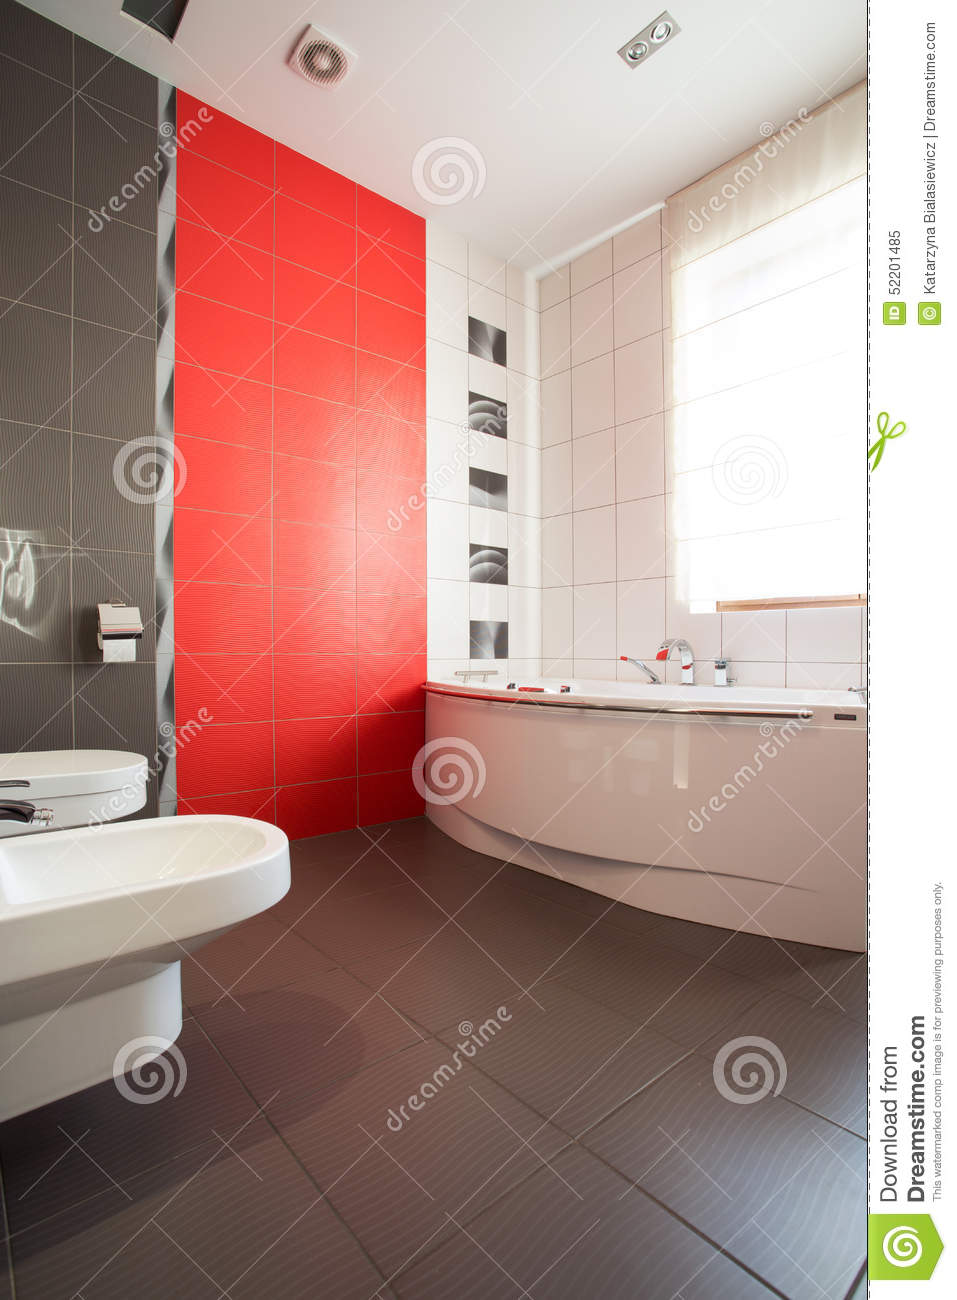 salle de bains grise et rouge photo stock image 52201485. Black Bedroom Furniture Sets. Home Design Ideas